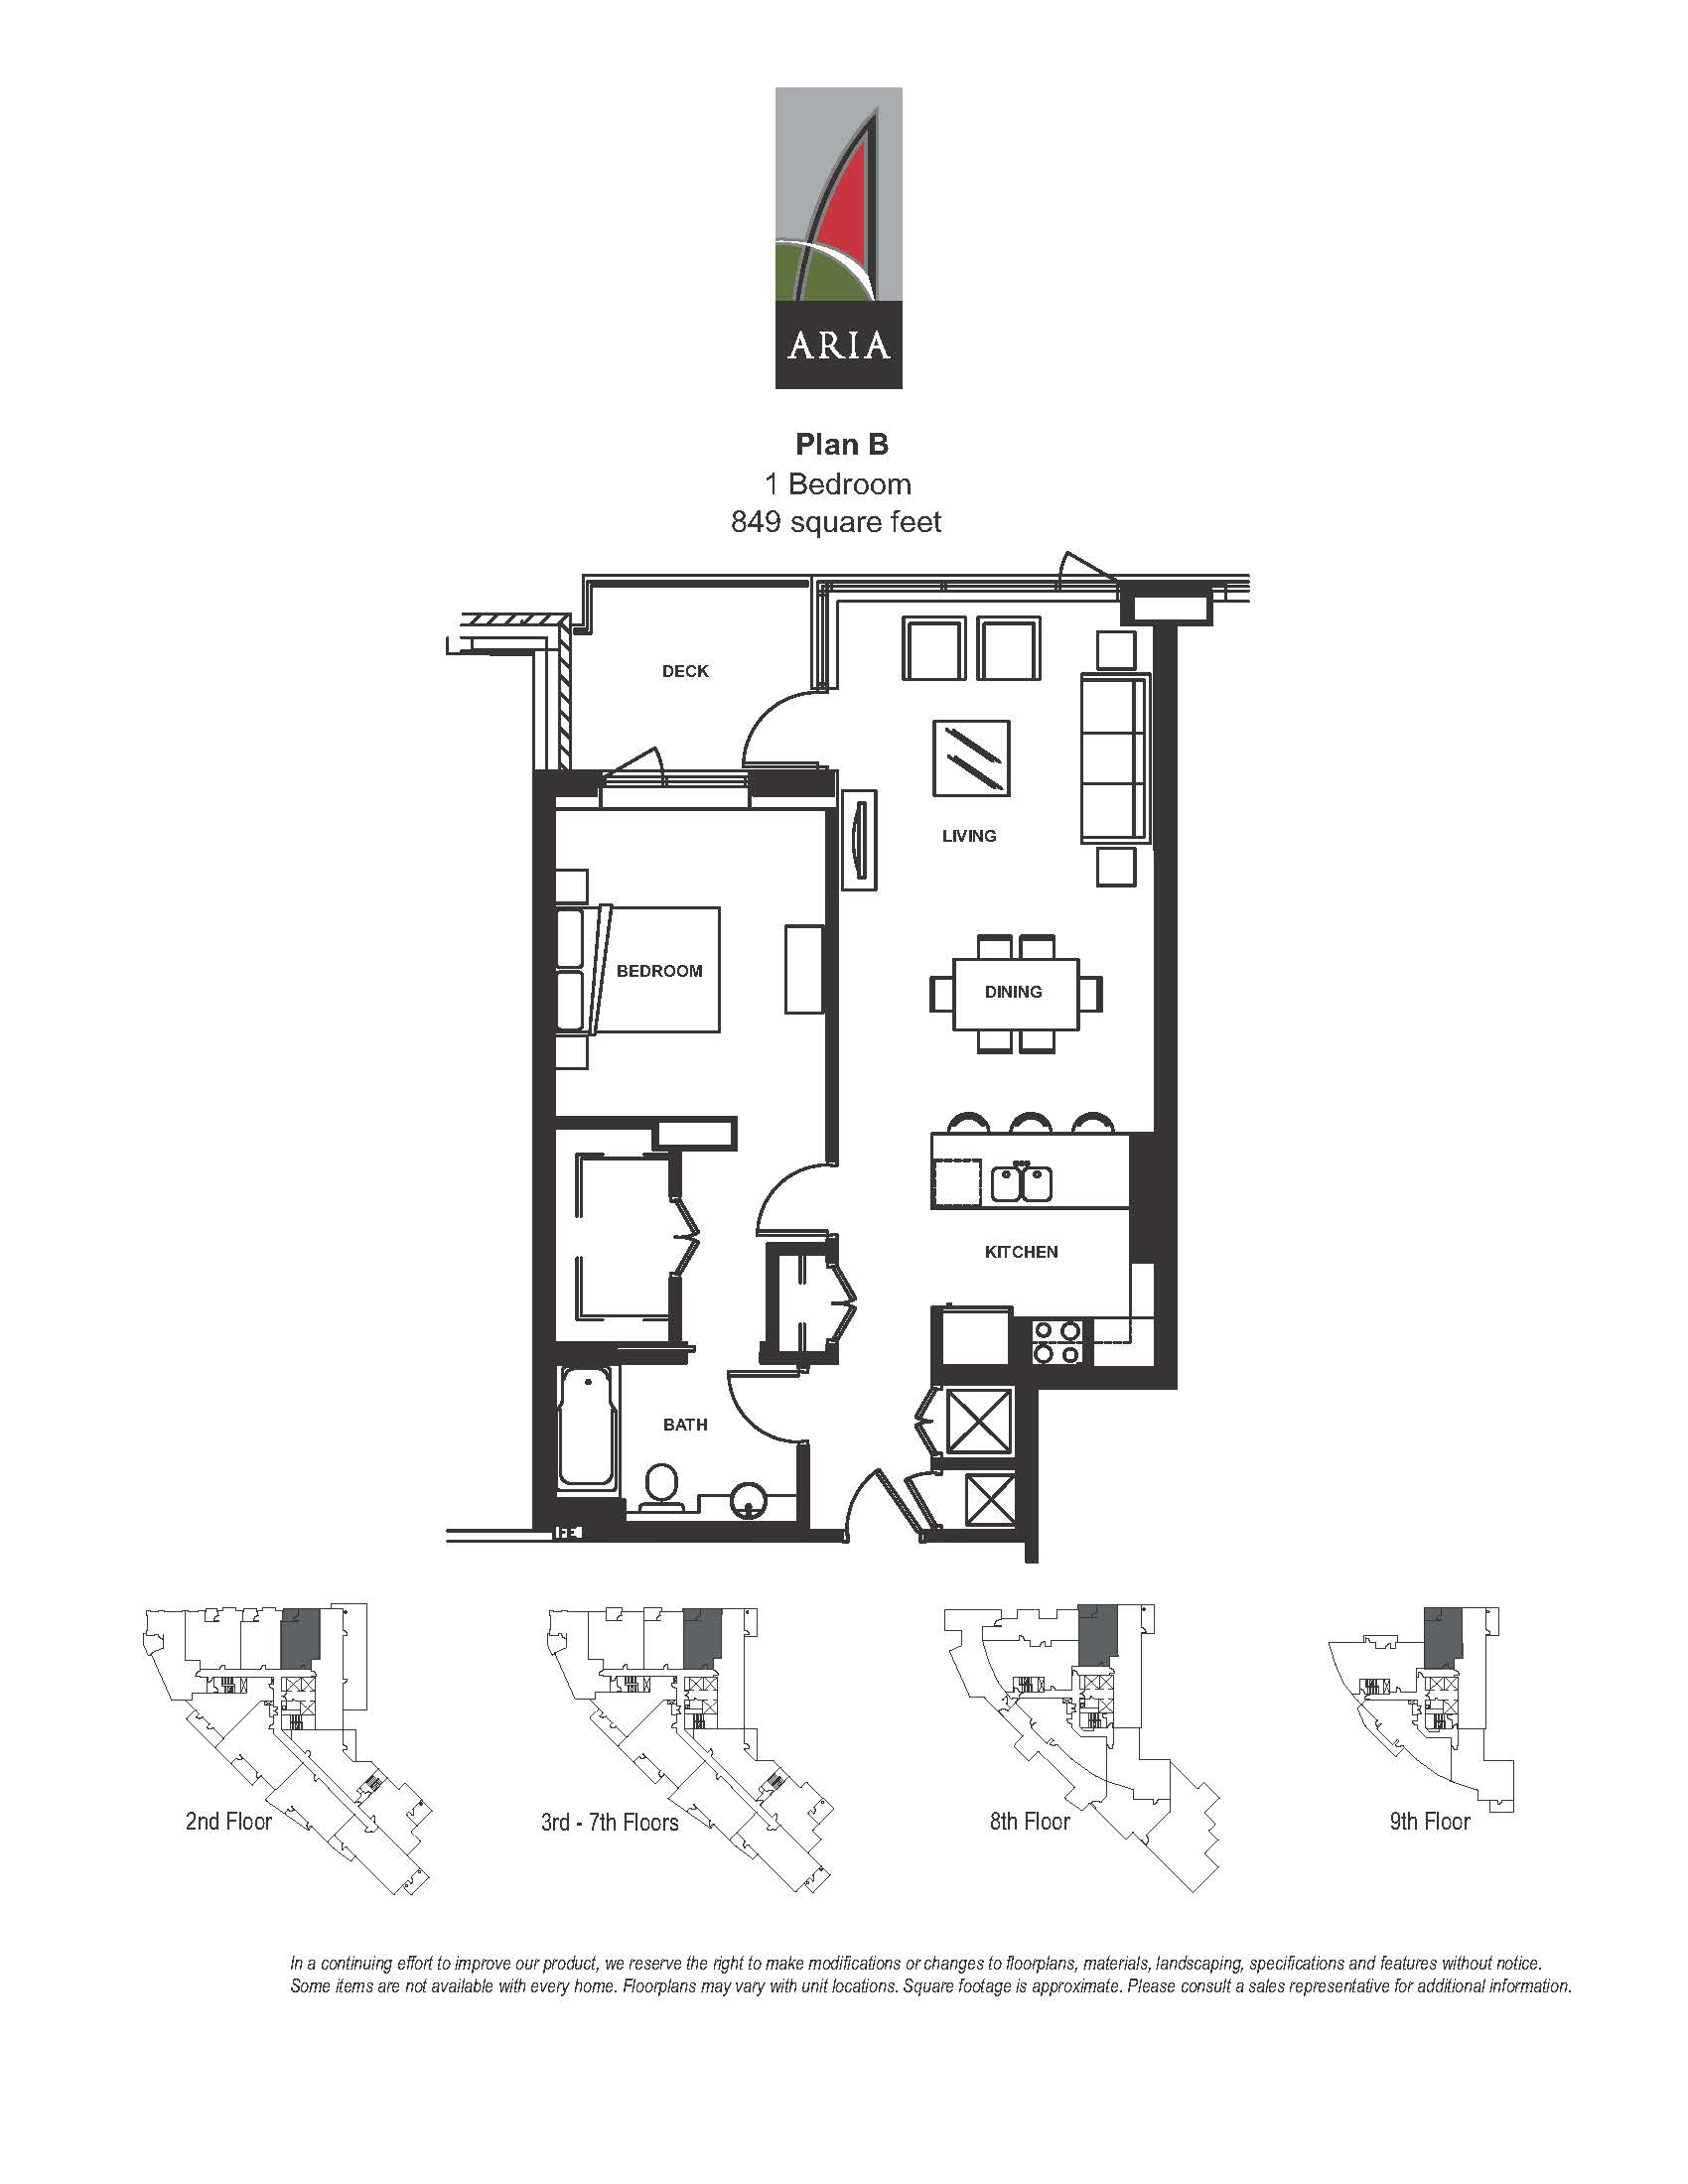 Aria 1 Bedroom - Plan B